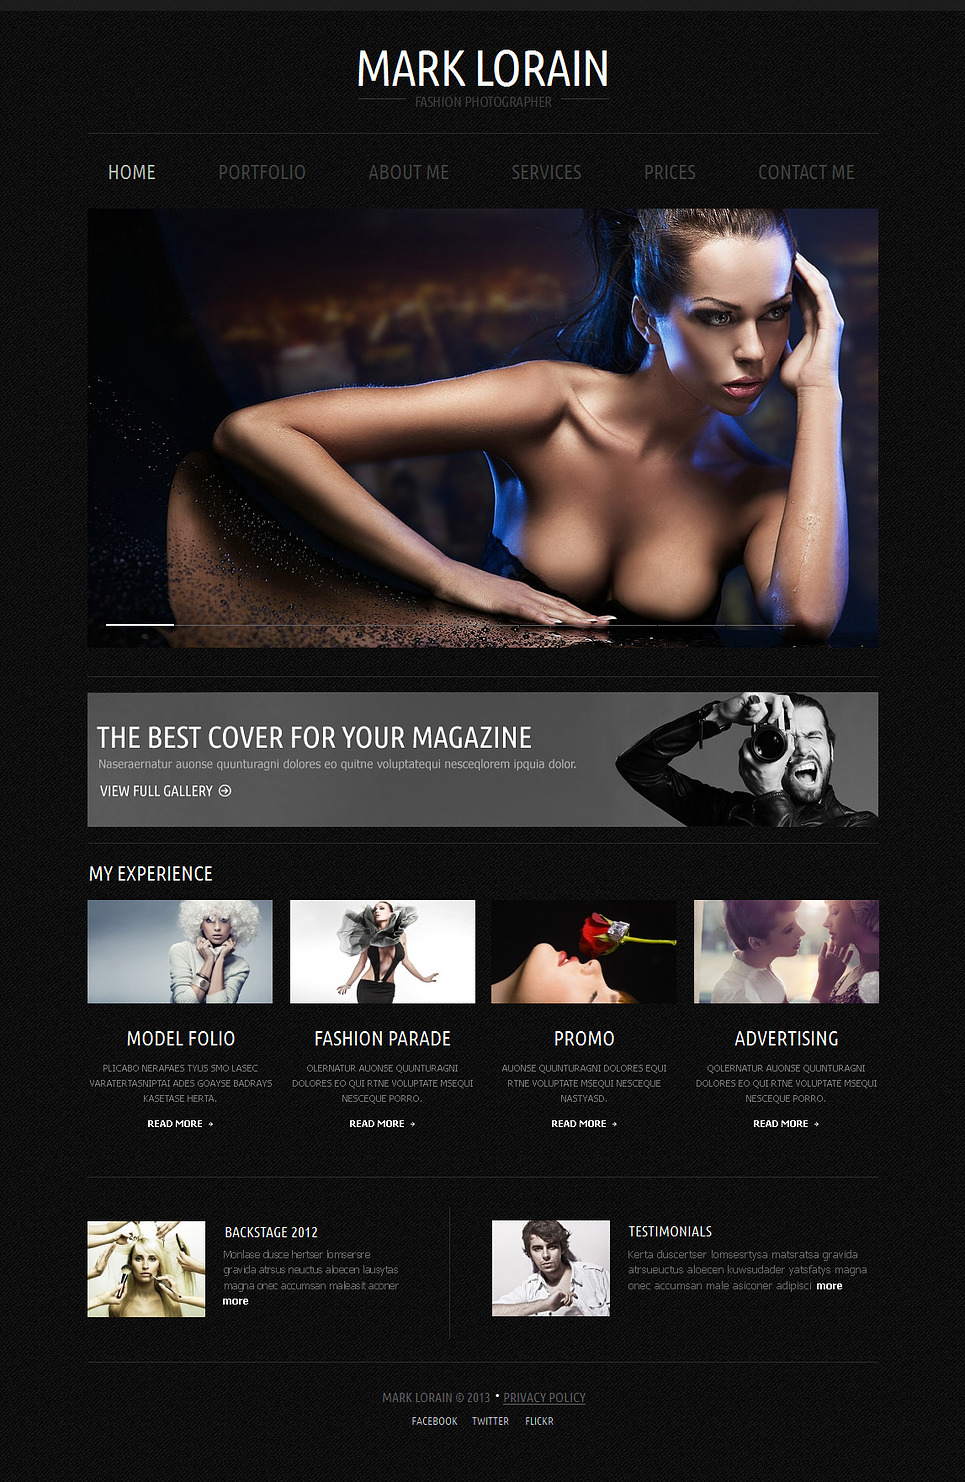 Fashion Photographer Website Template on Black Background - image